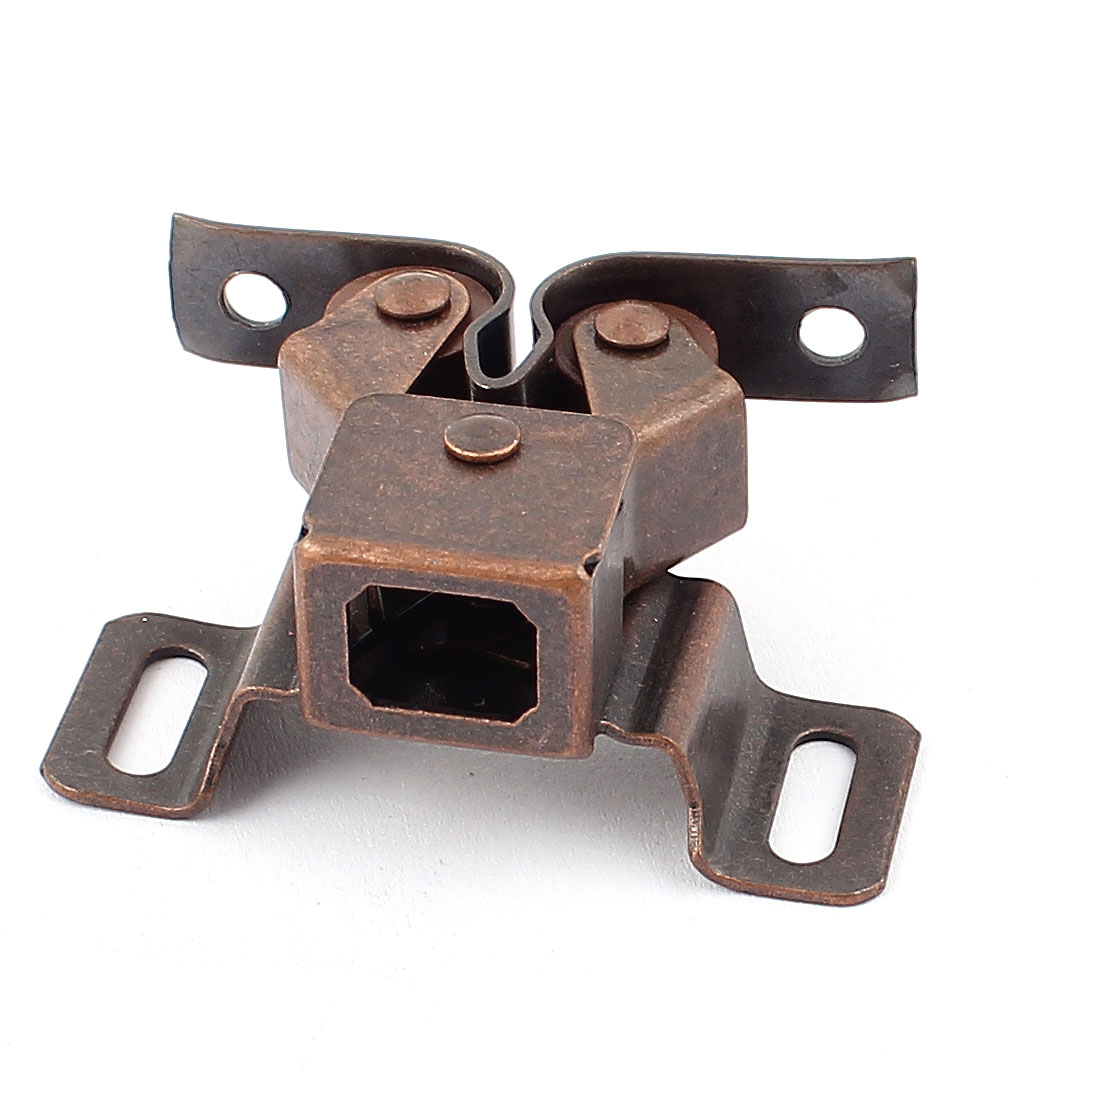 Cabinet Cupboard Door Double Ball Roller Catch Latch Lock Bronze Tone